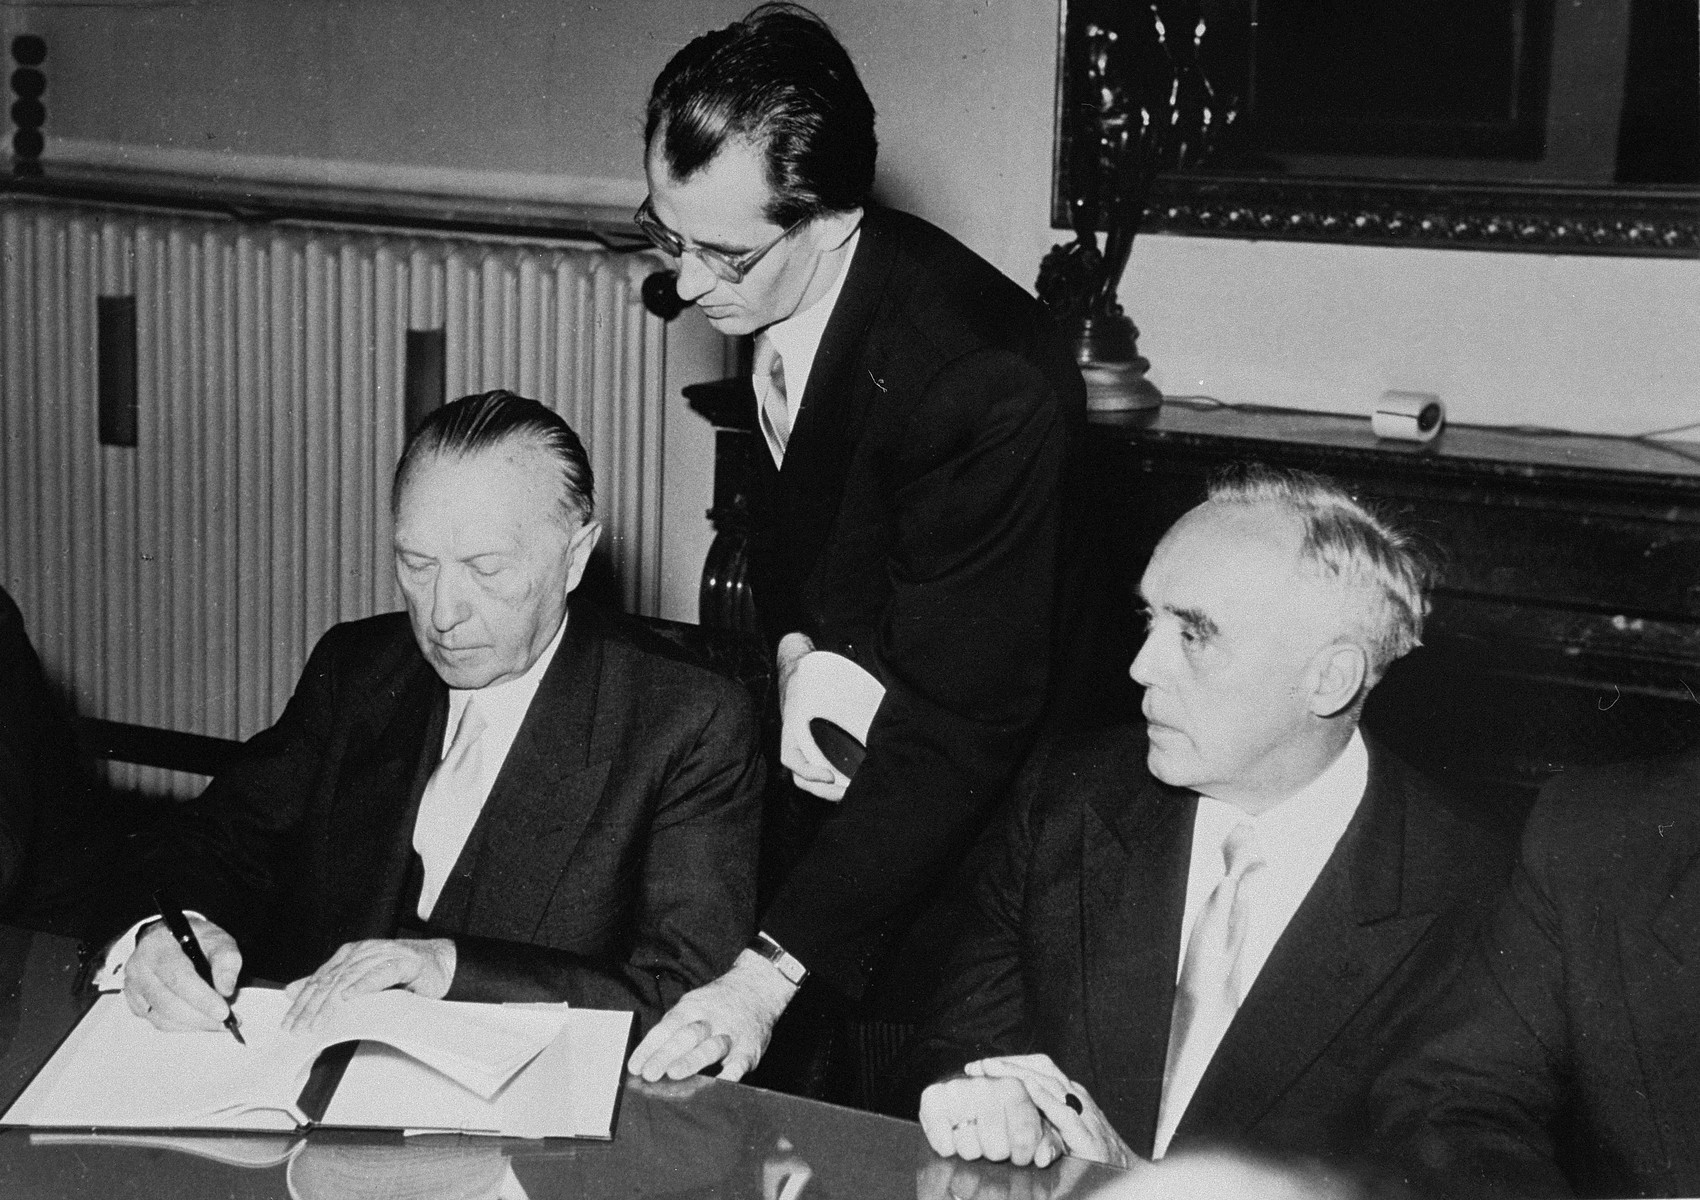 The first Chancellor of post-war West Germany, Konrad Adenauer, with his aide Prof. Boehm, at the signing of the Reparations Agreement between Israel, West Germany, and the Committee on Jewish Material Claims.